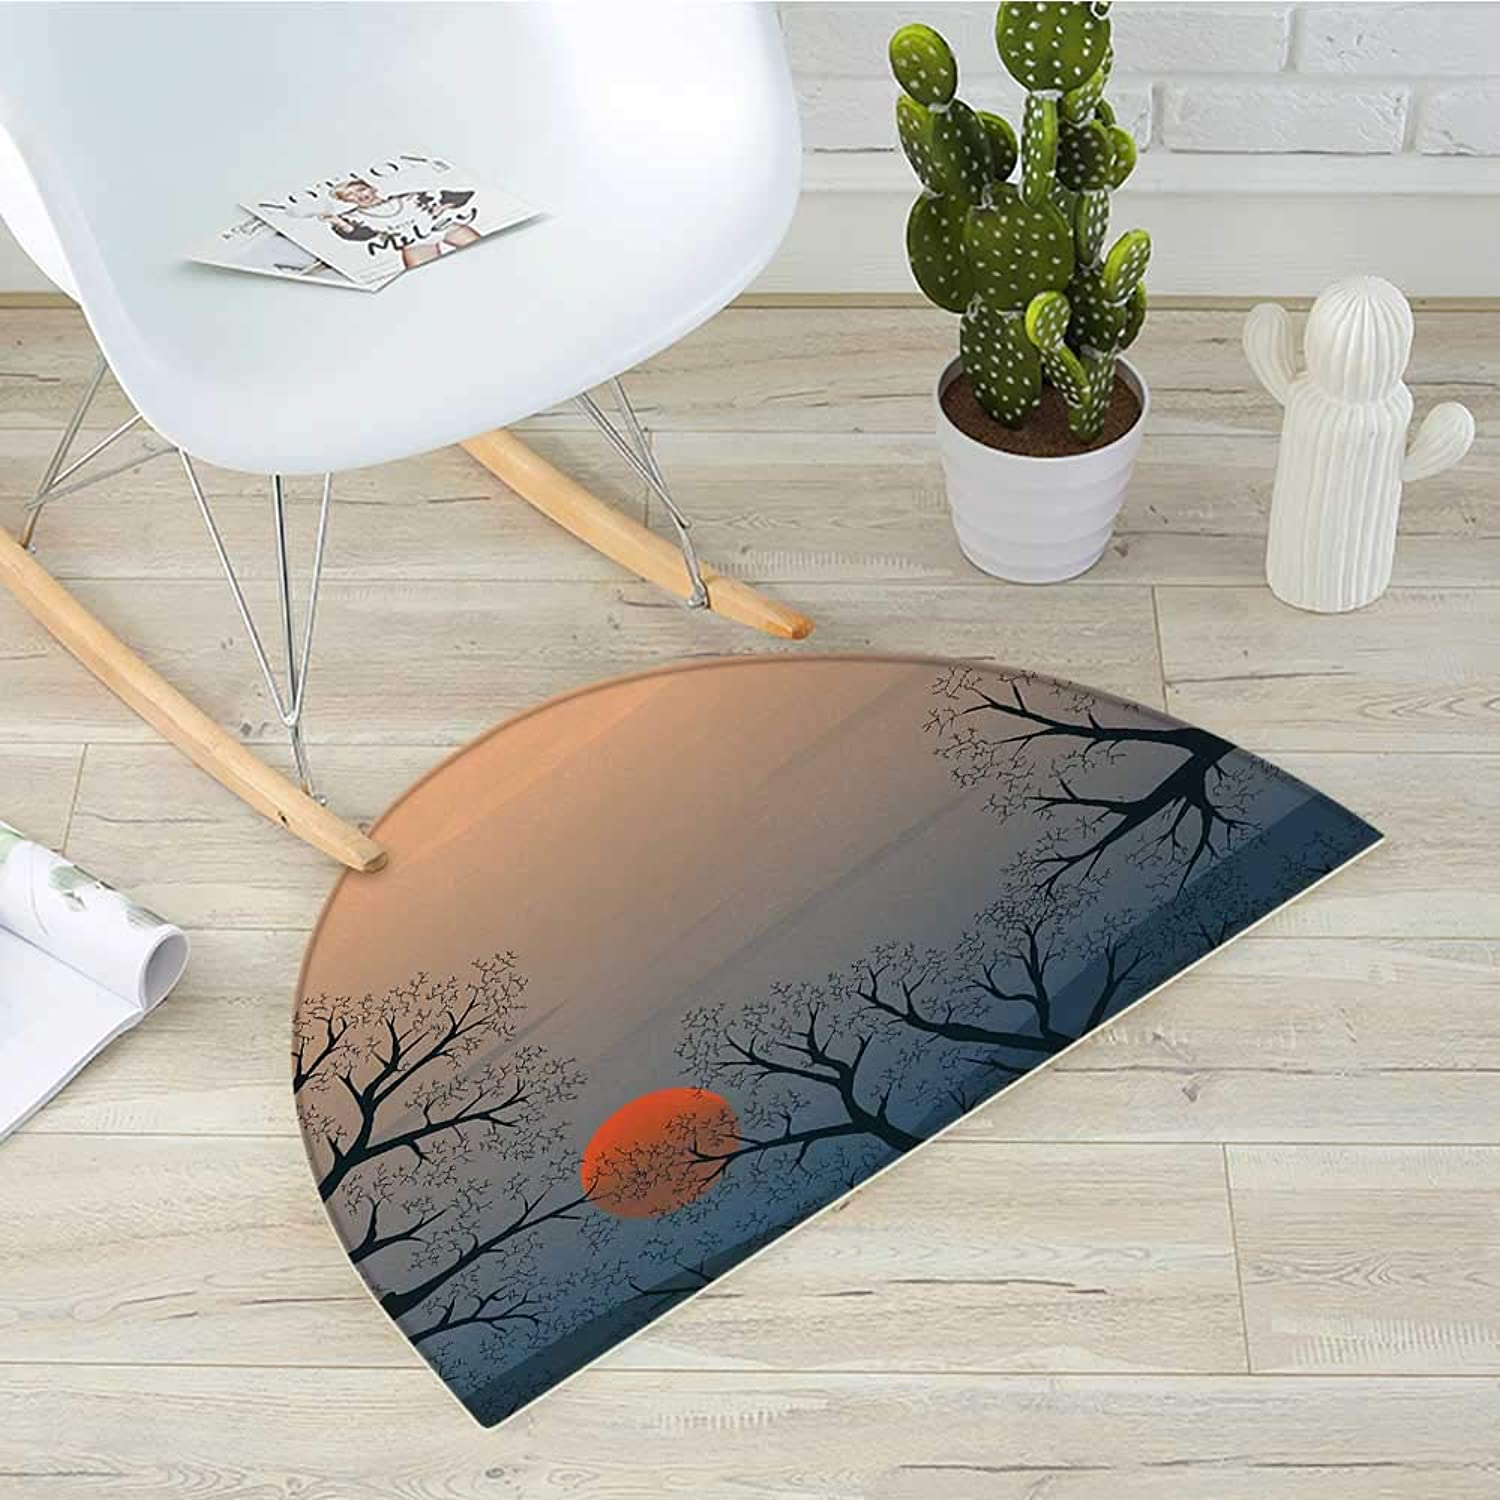 Nature Semicircular CushionSun Rises Between Tree Branches in Misty Weather Foggy Sky Illustration Entry Door Mat H 31.5  xD 47.2  Slate bluee orange Peach